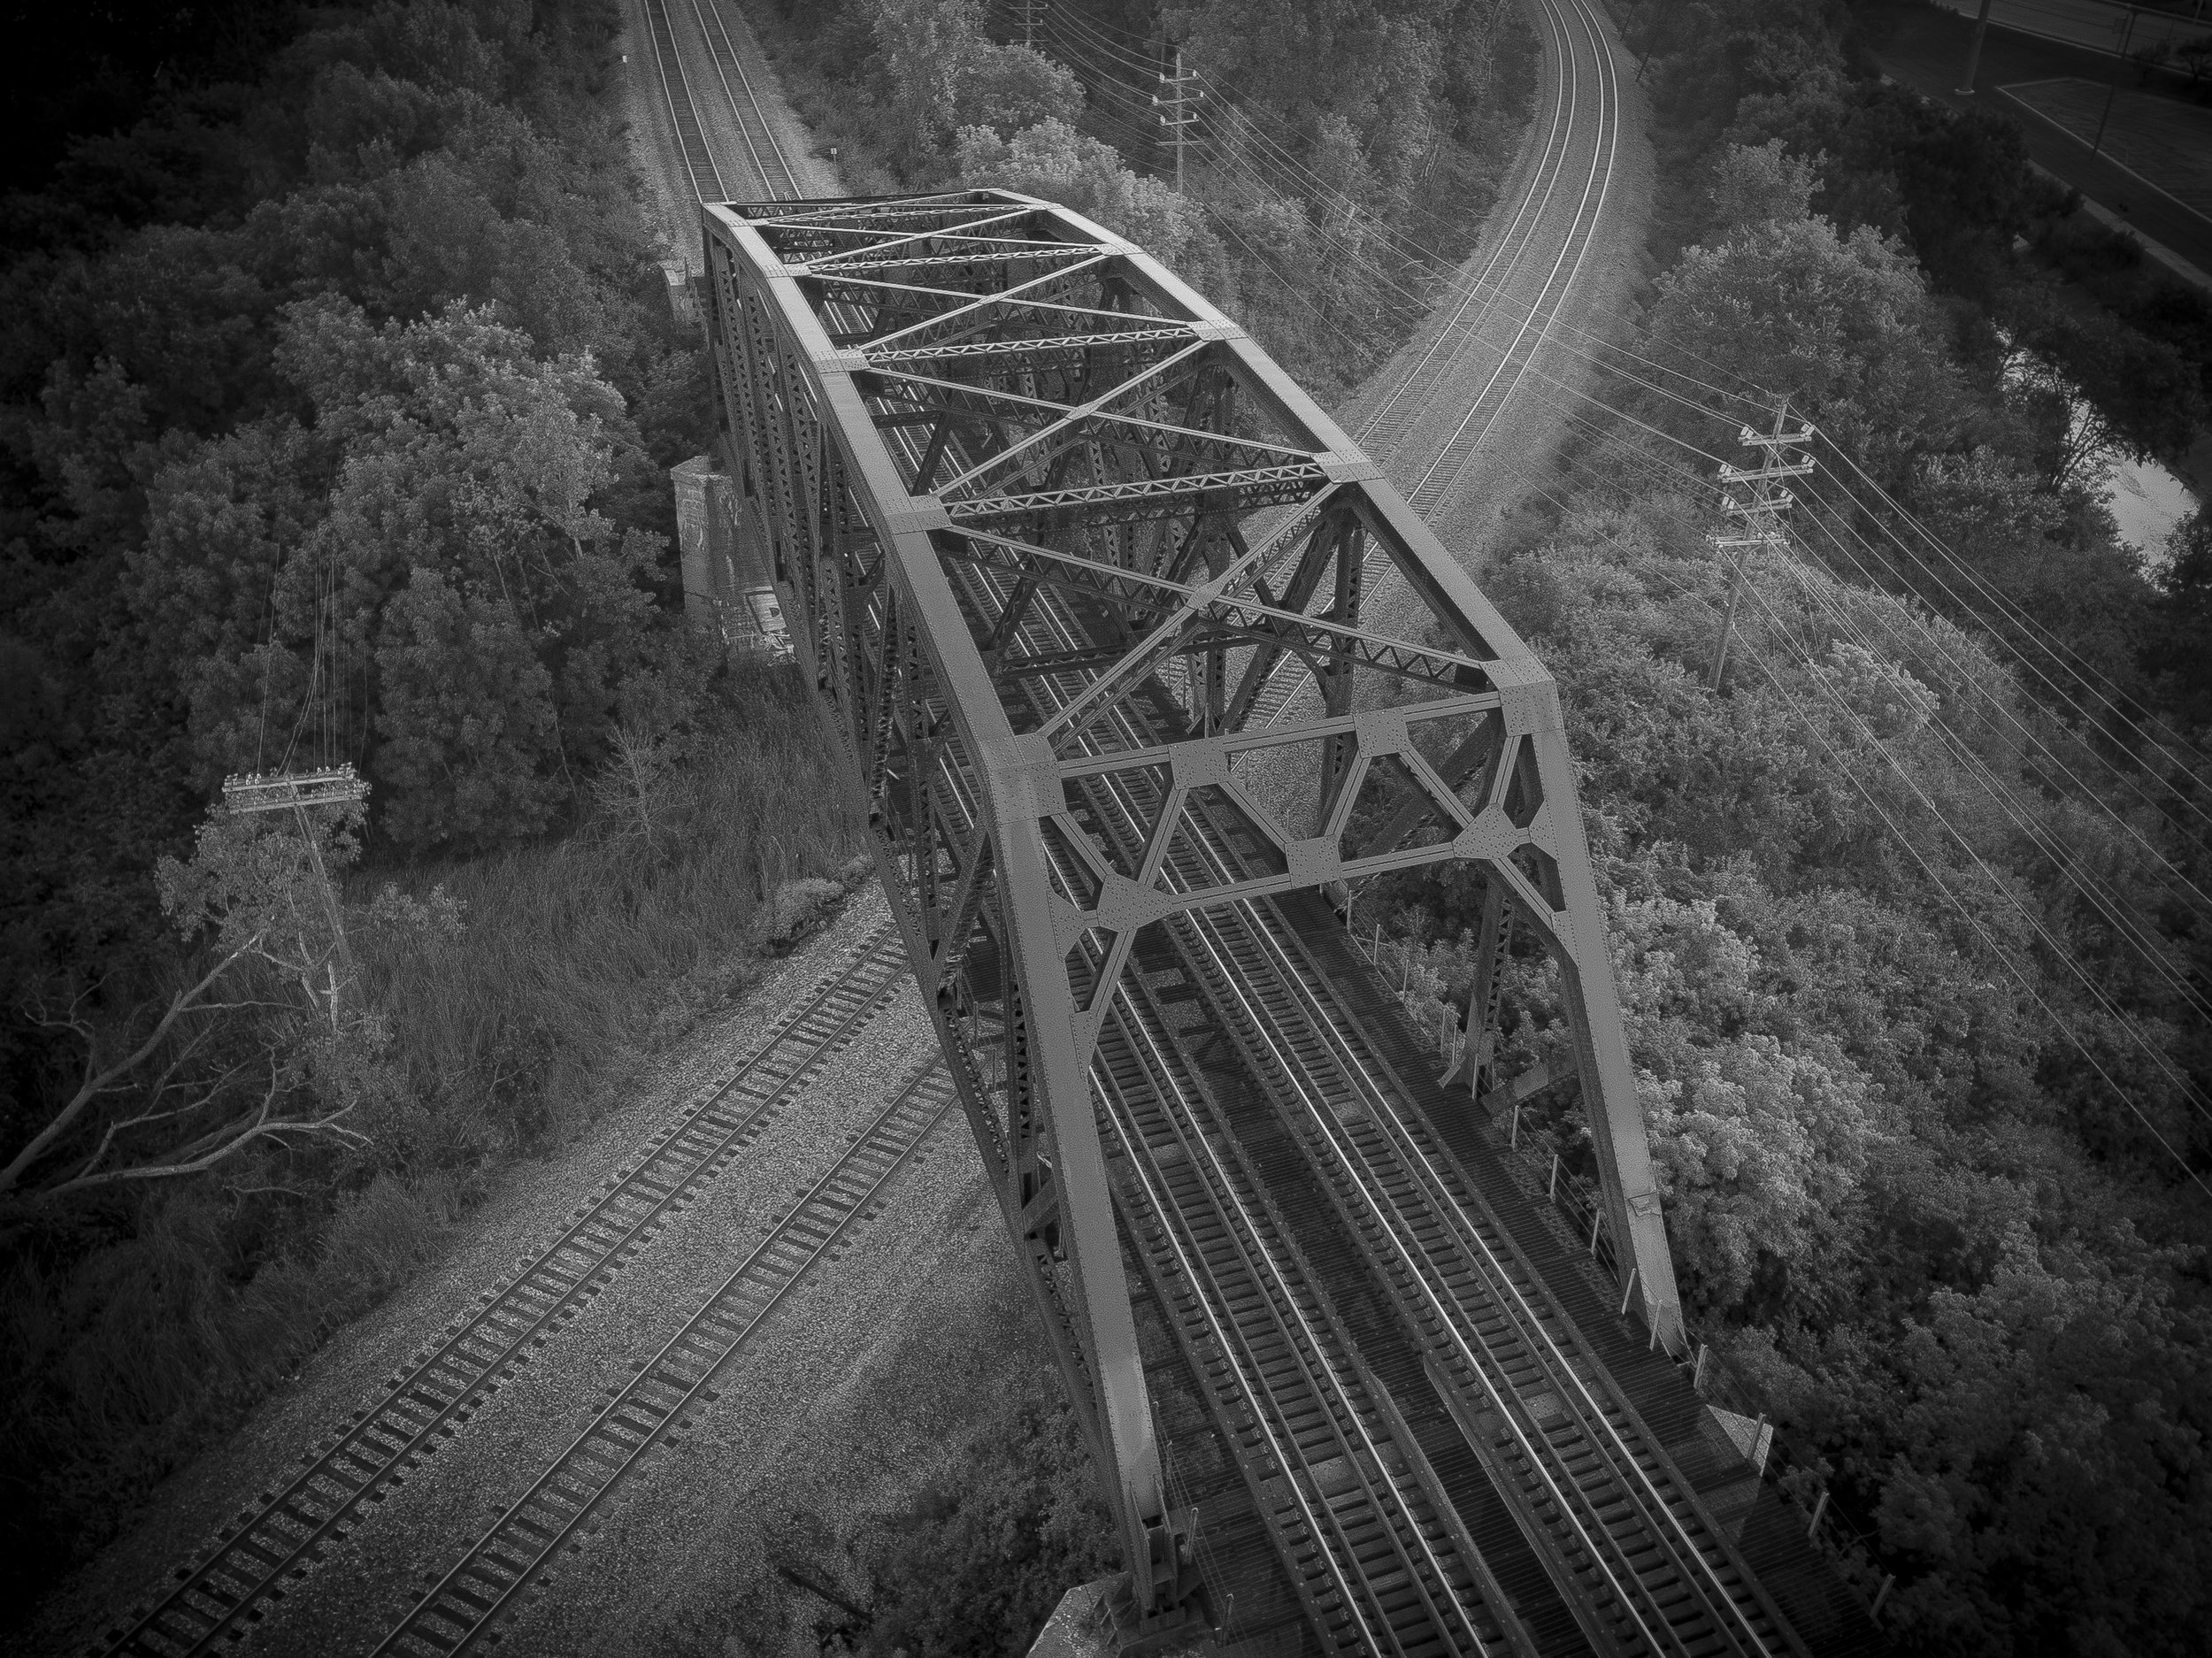 Train Bridge - Wauwatosa, WI